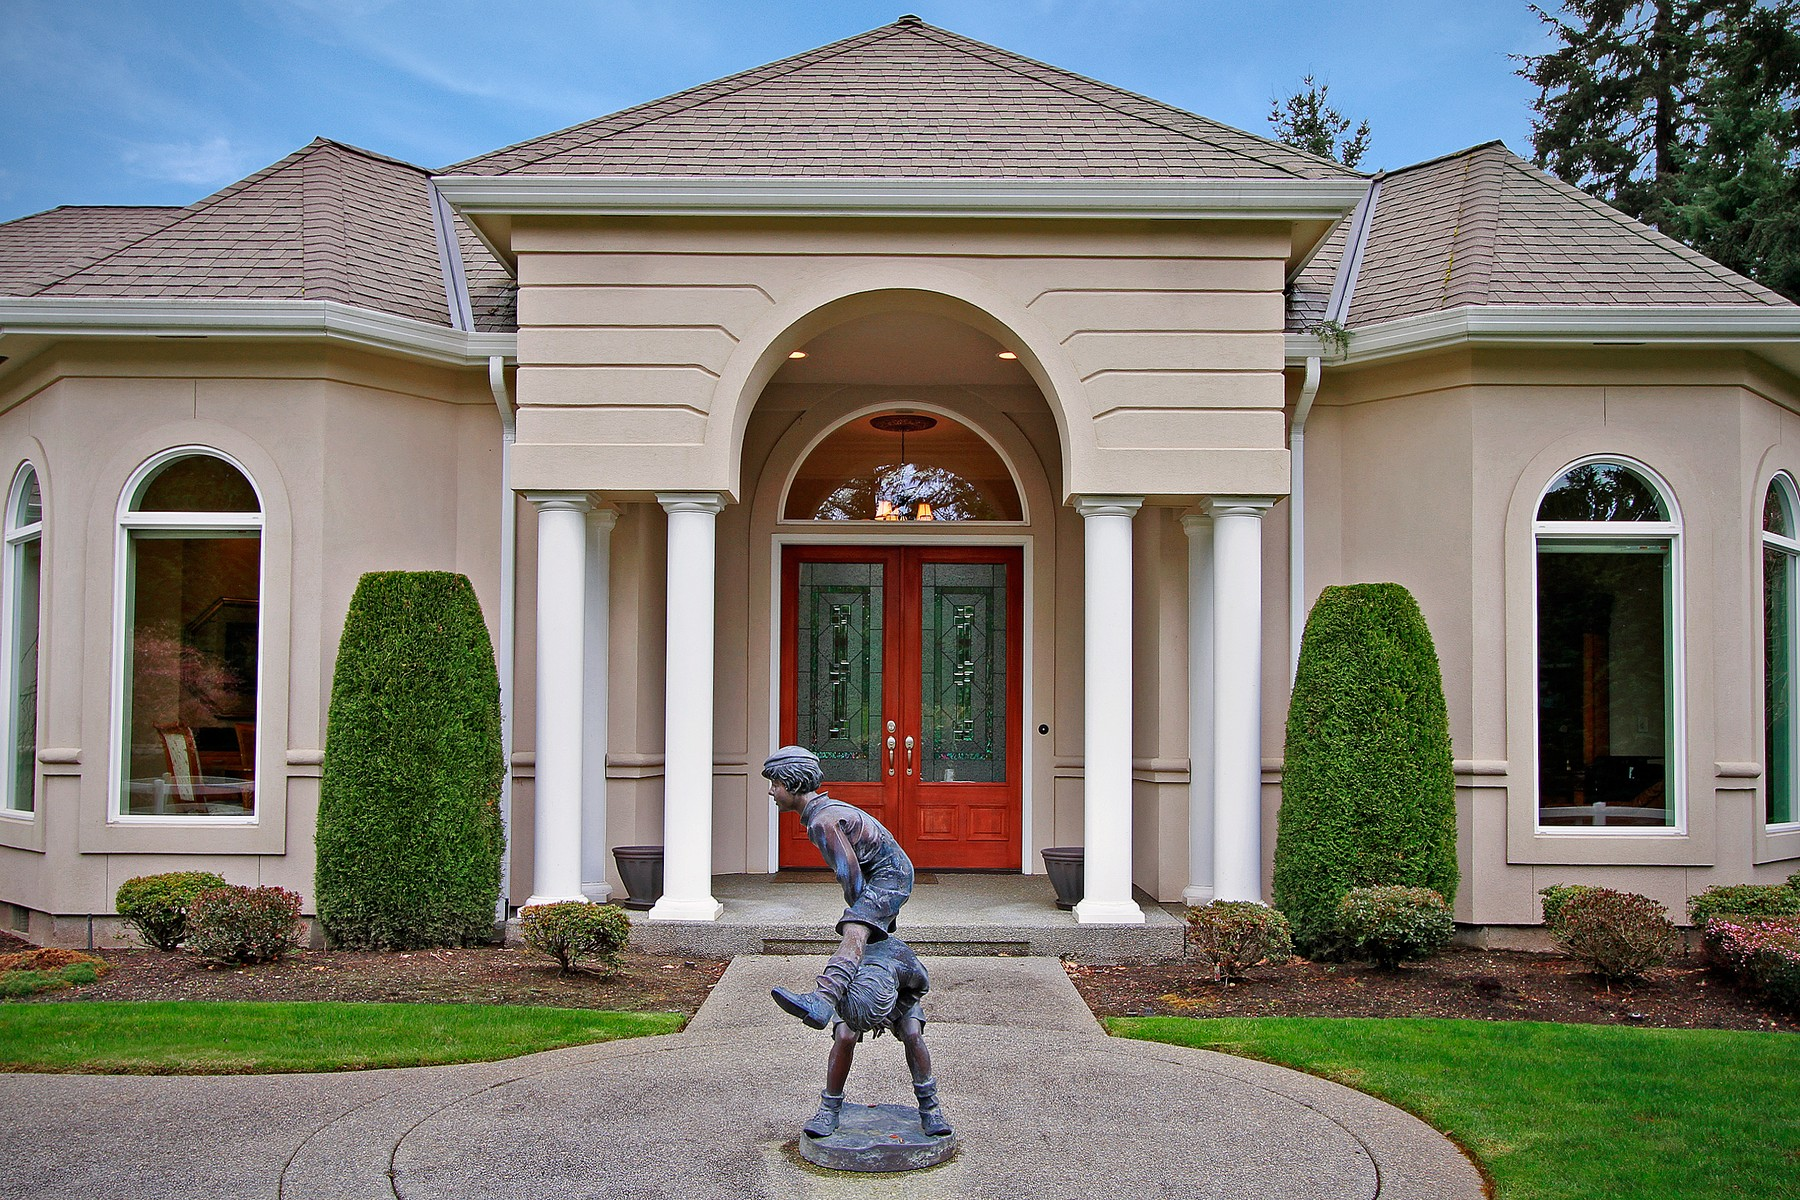 Maison unifamiliale pour l Vente à CountryClubCircle 128 Country Club Circle Lakewood, Washington, 98498 États-Unis